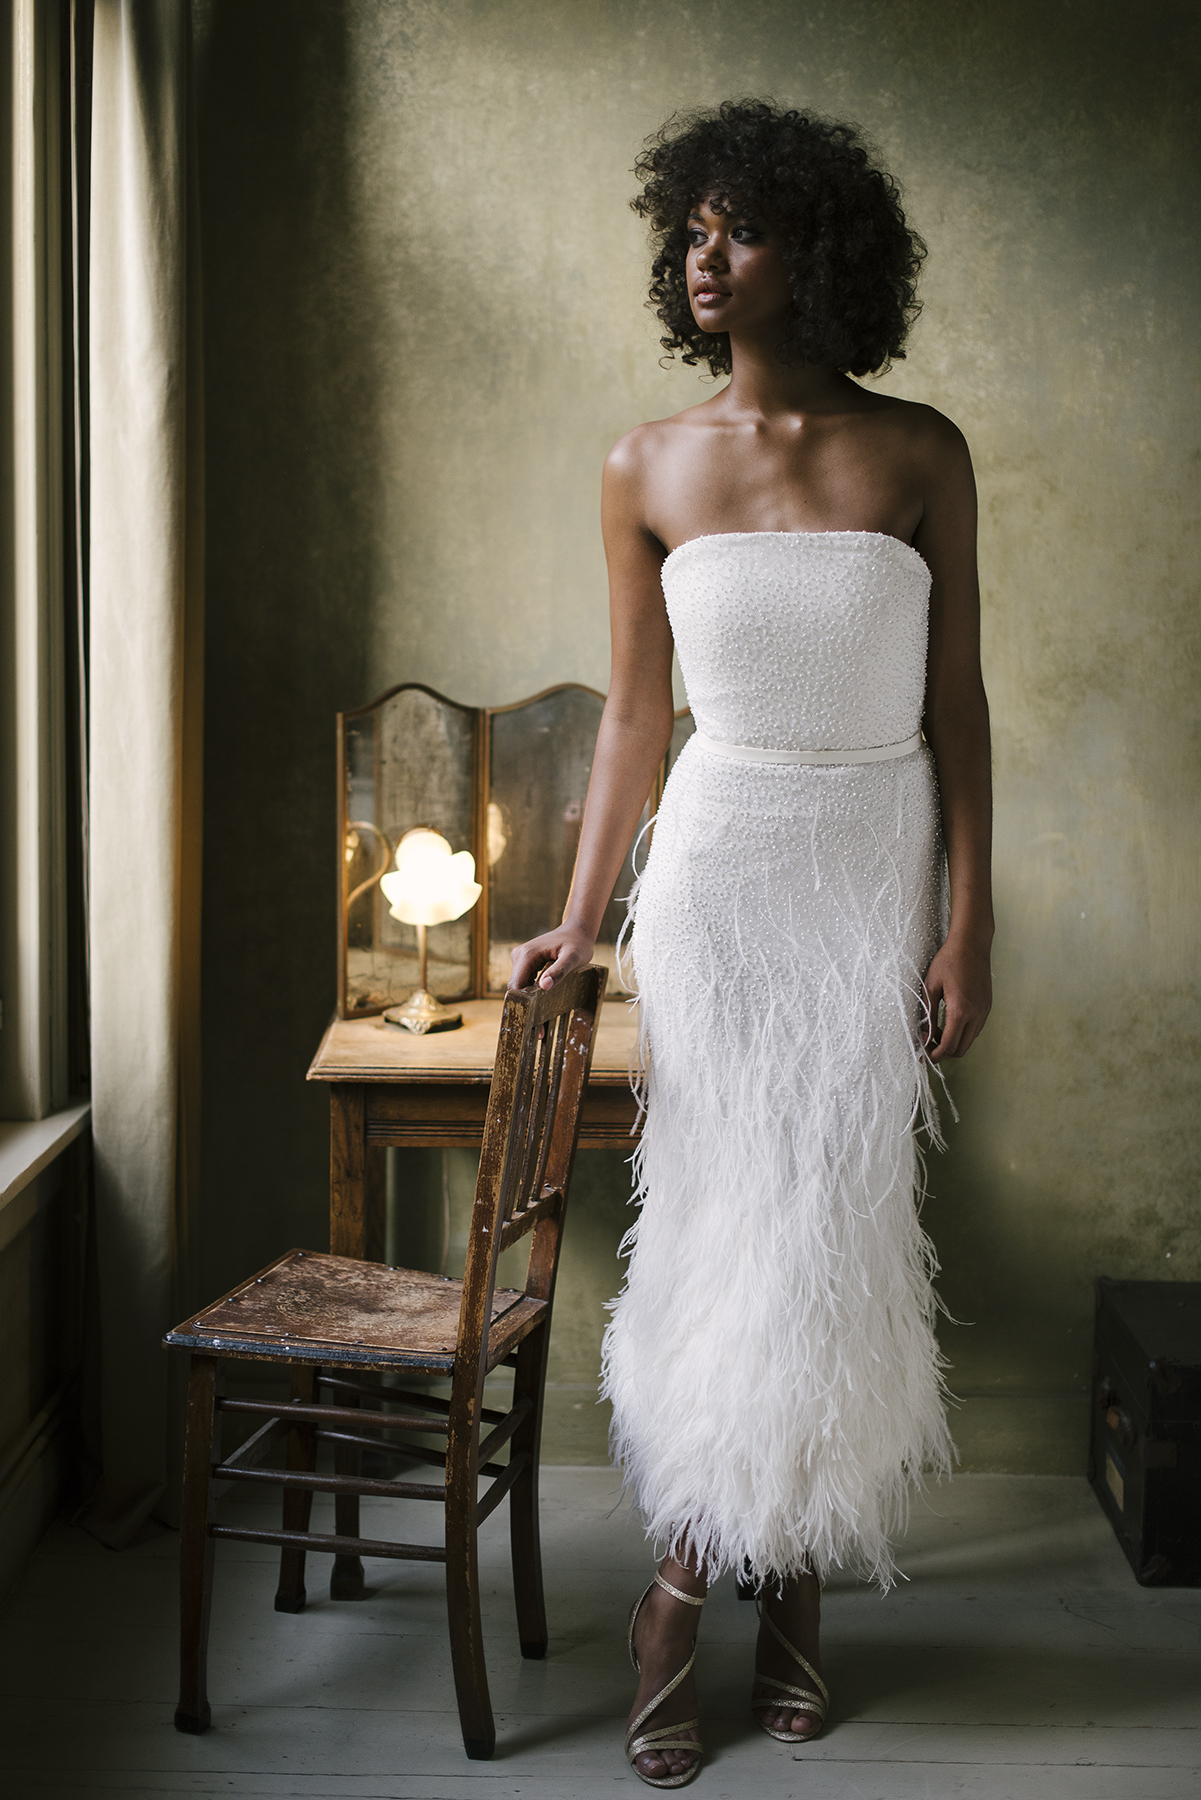 valentine-avoh-robe-mariee-ginger-wedding-dress-bruxelles-photo-elodie-timmermans-37.jpg